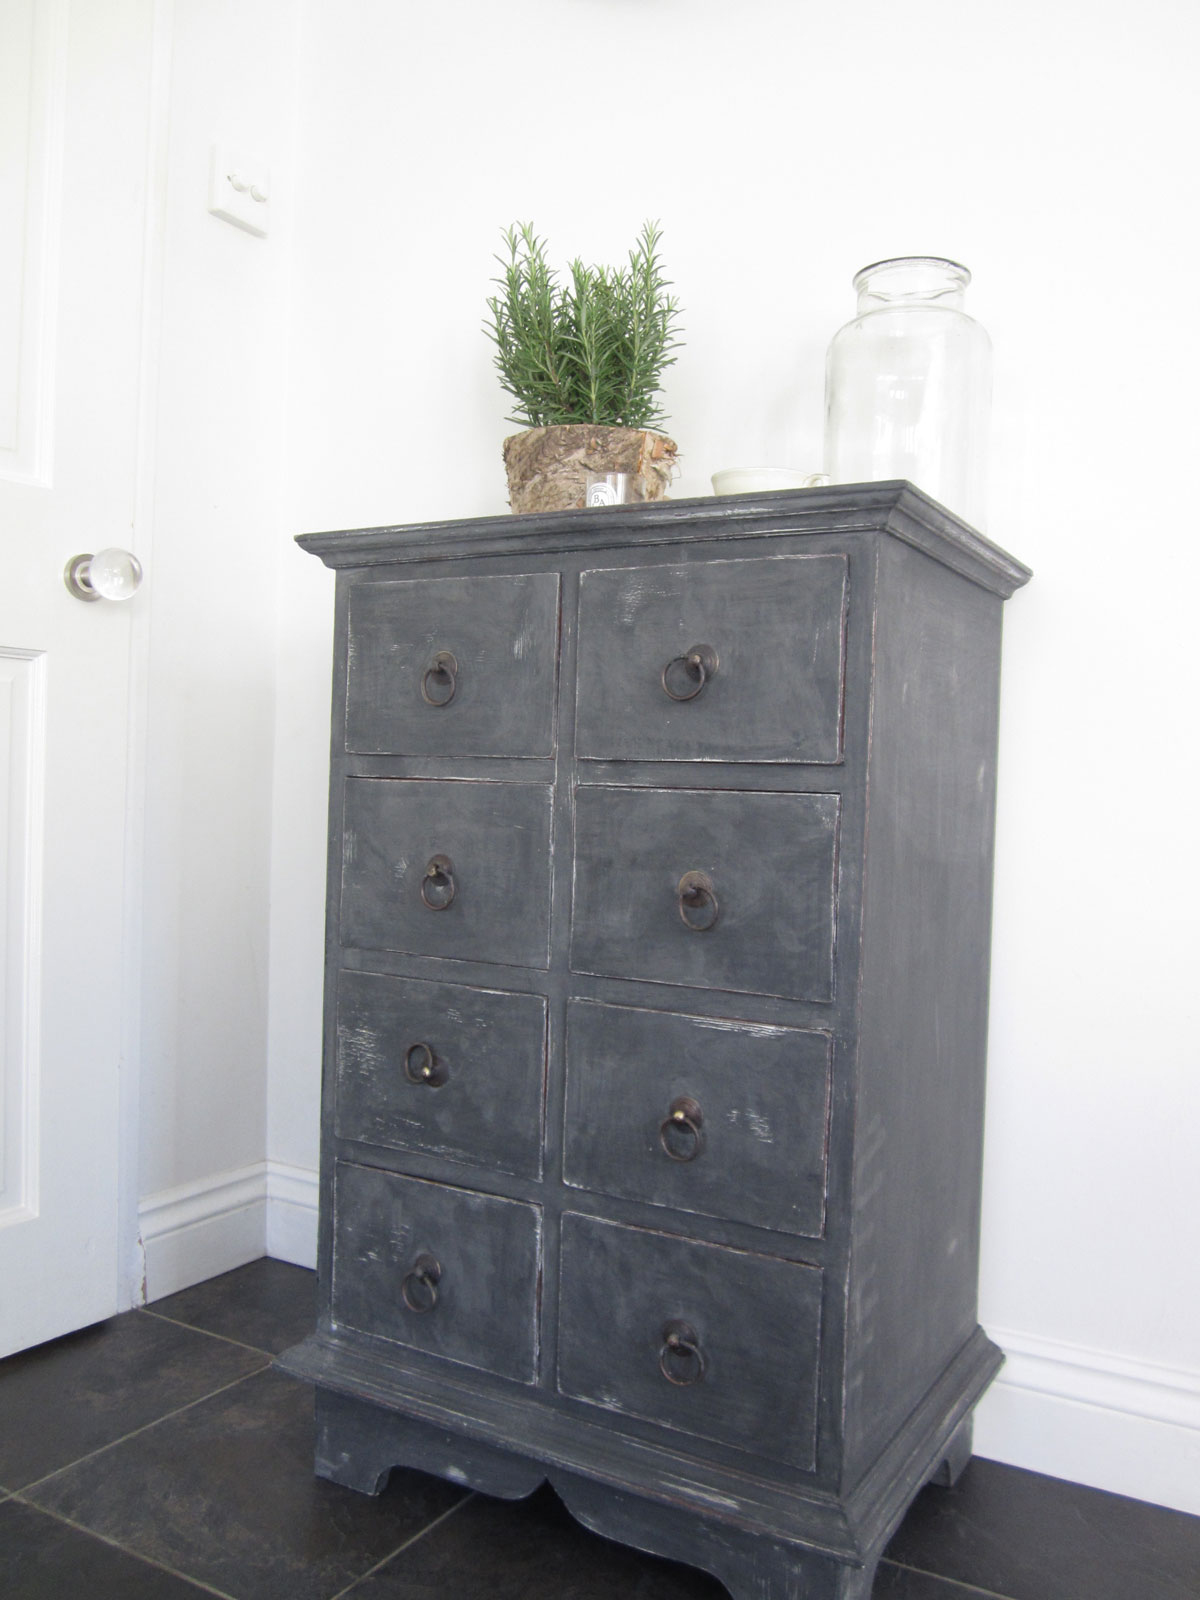 This old dark wood set of drawers got a gun metal look with a layer of chalk paint in differing tones